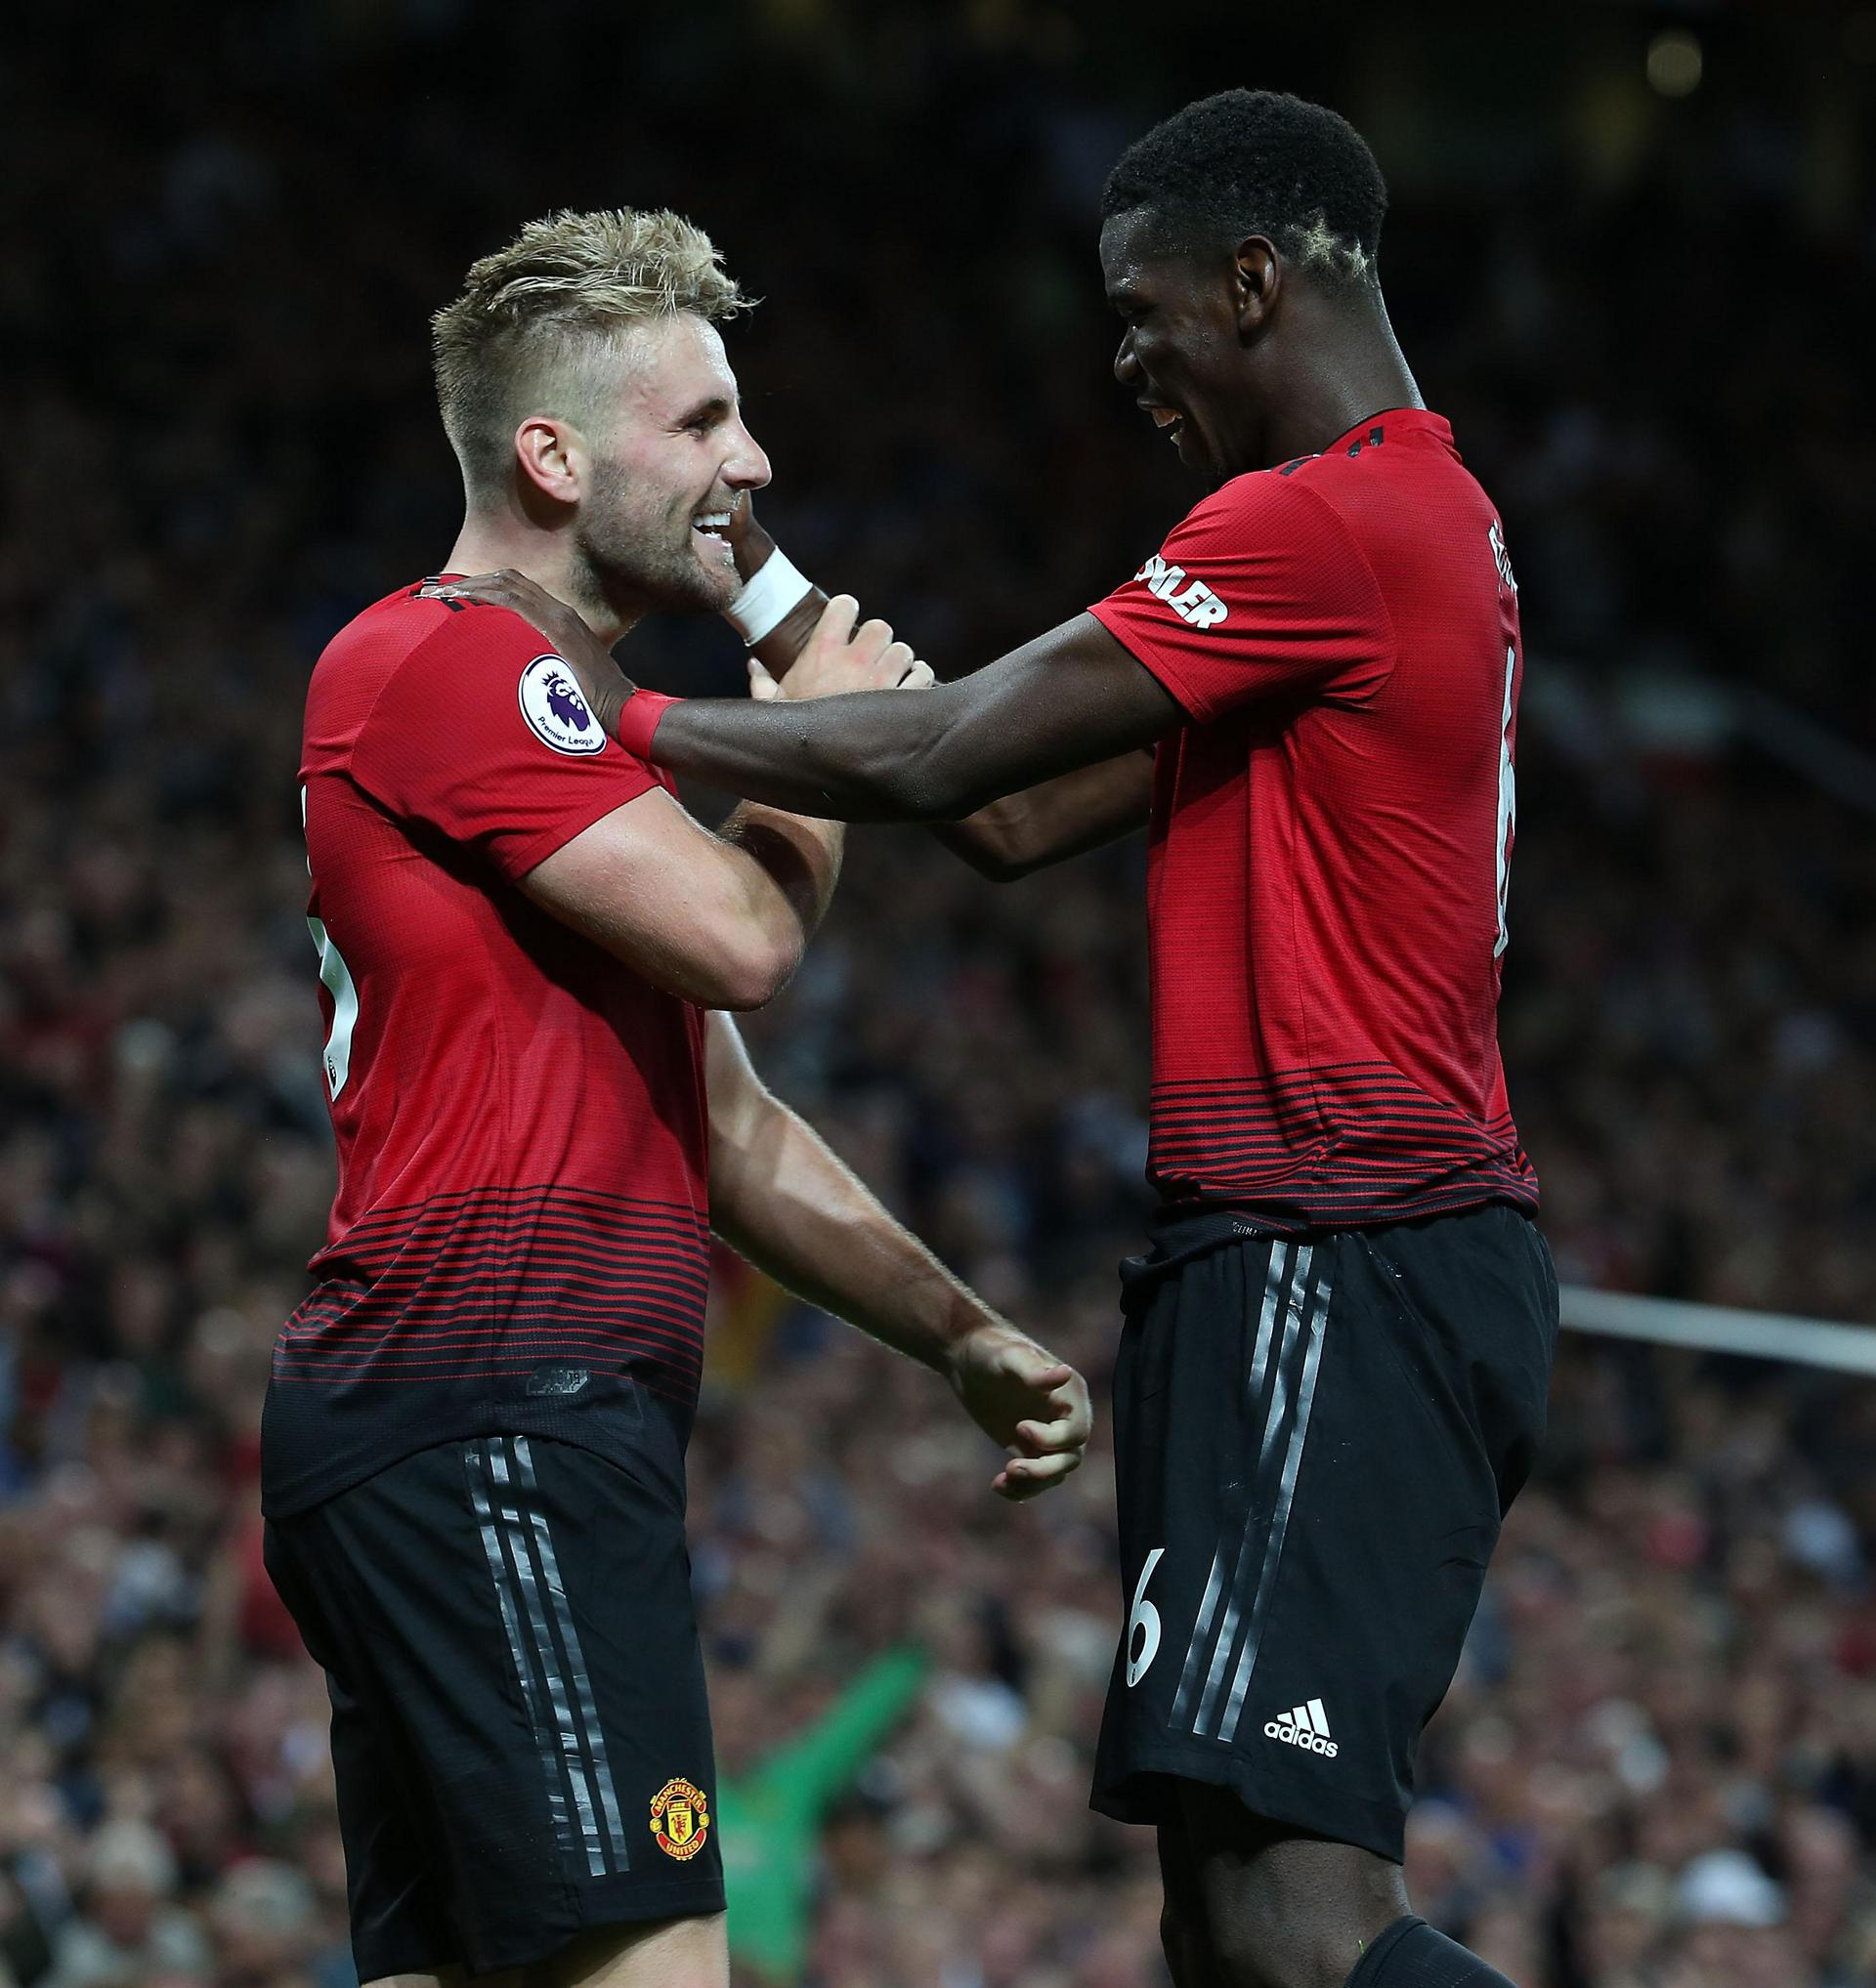 Luke Shaw and Paul Pogba at Old Trafford.